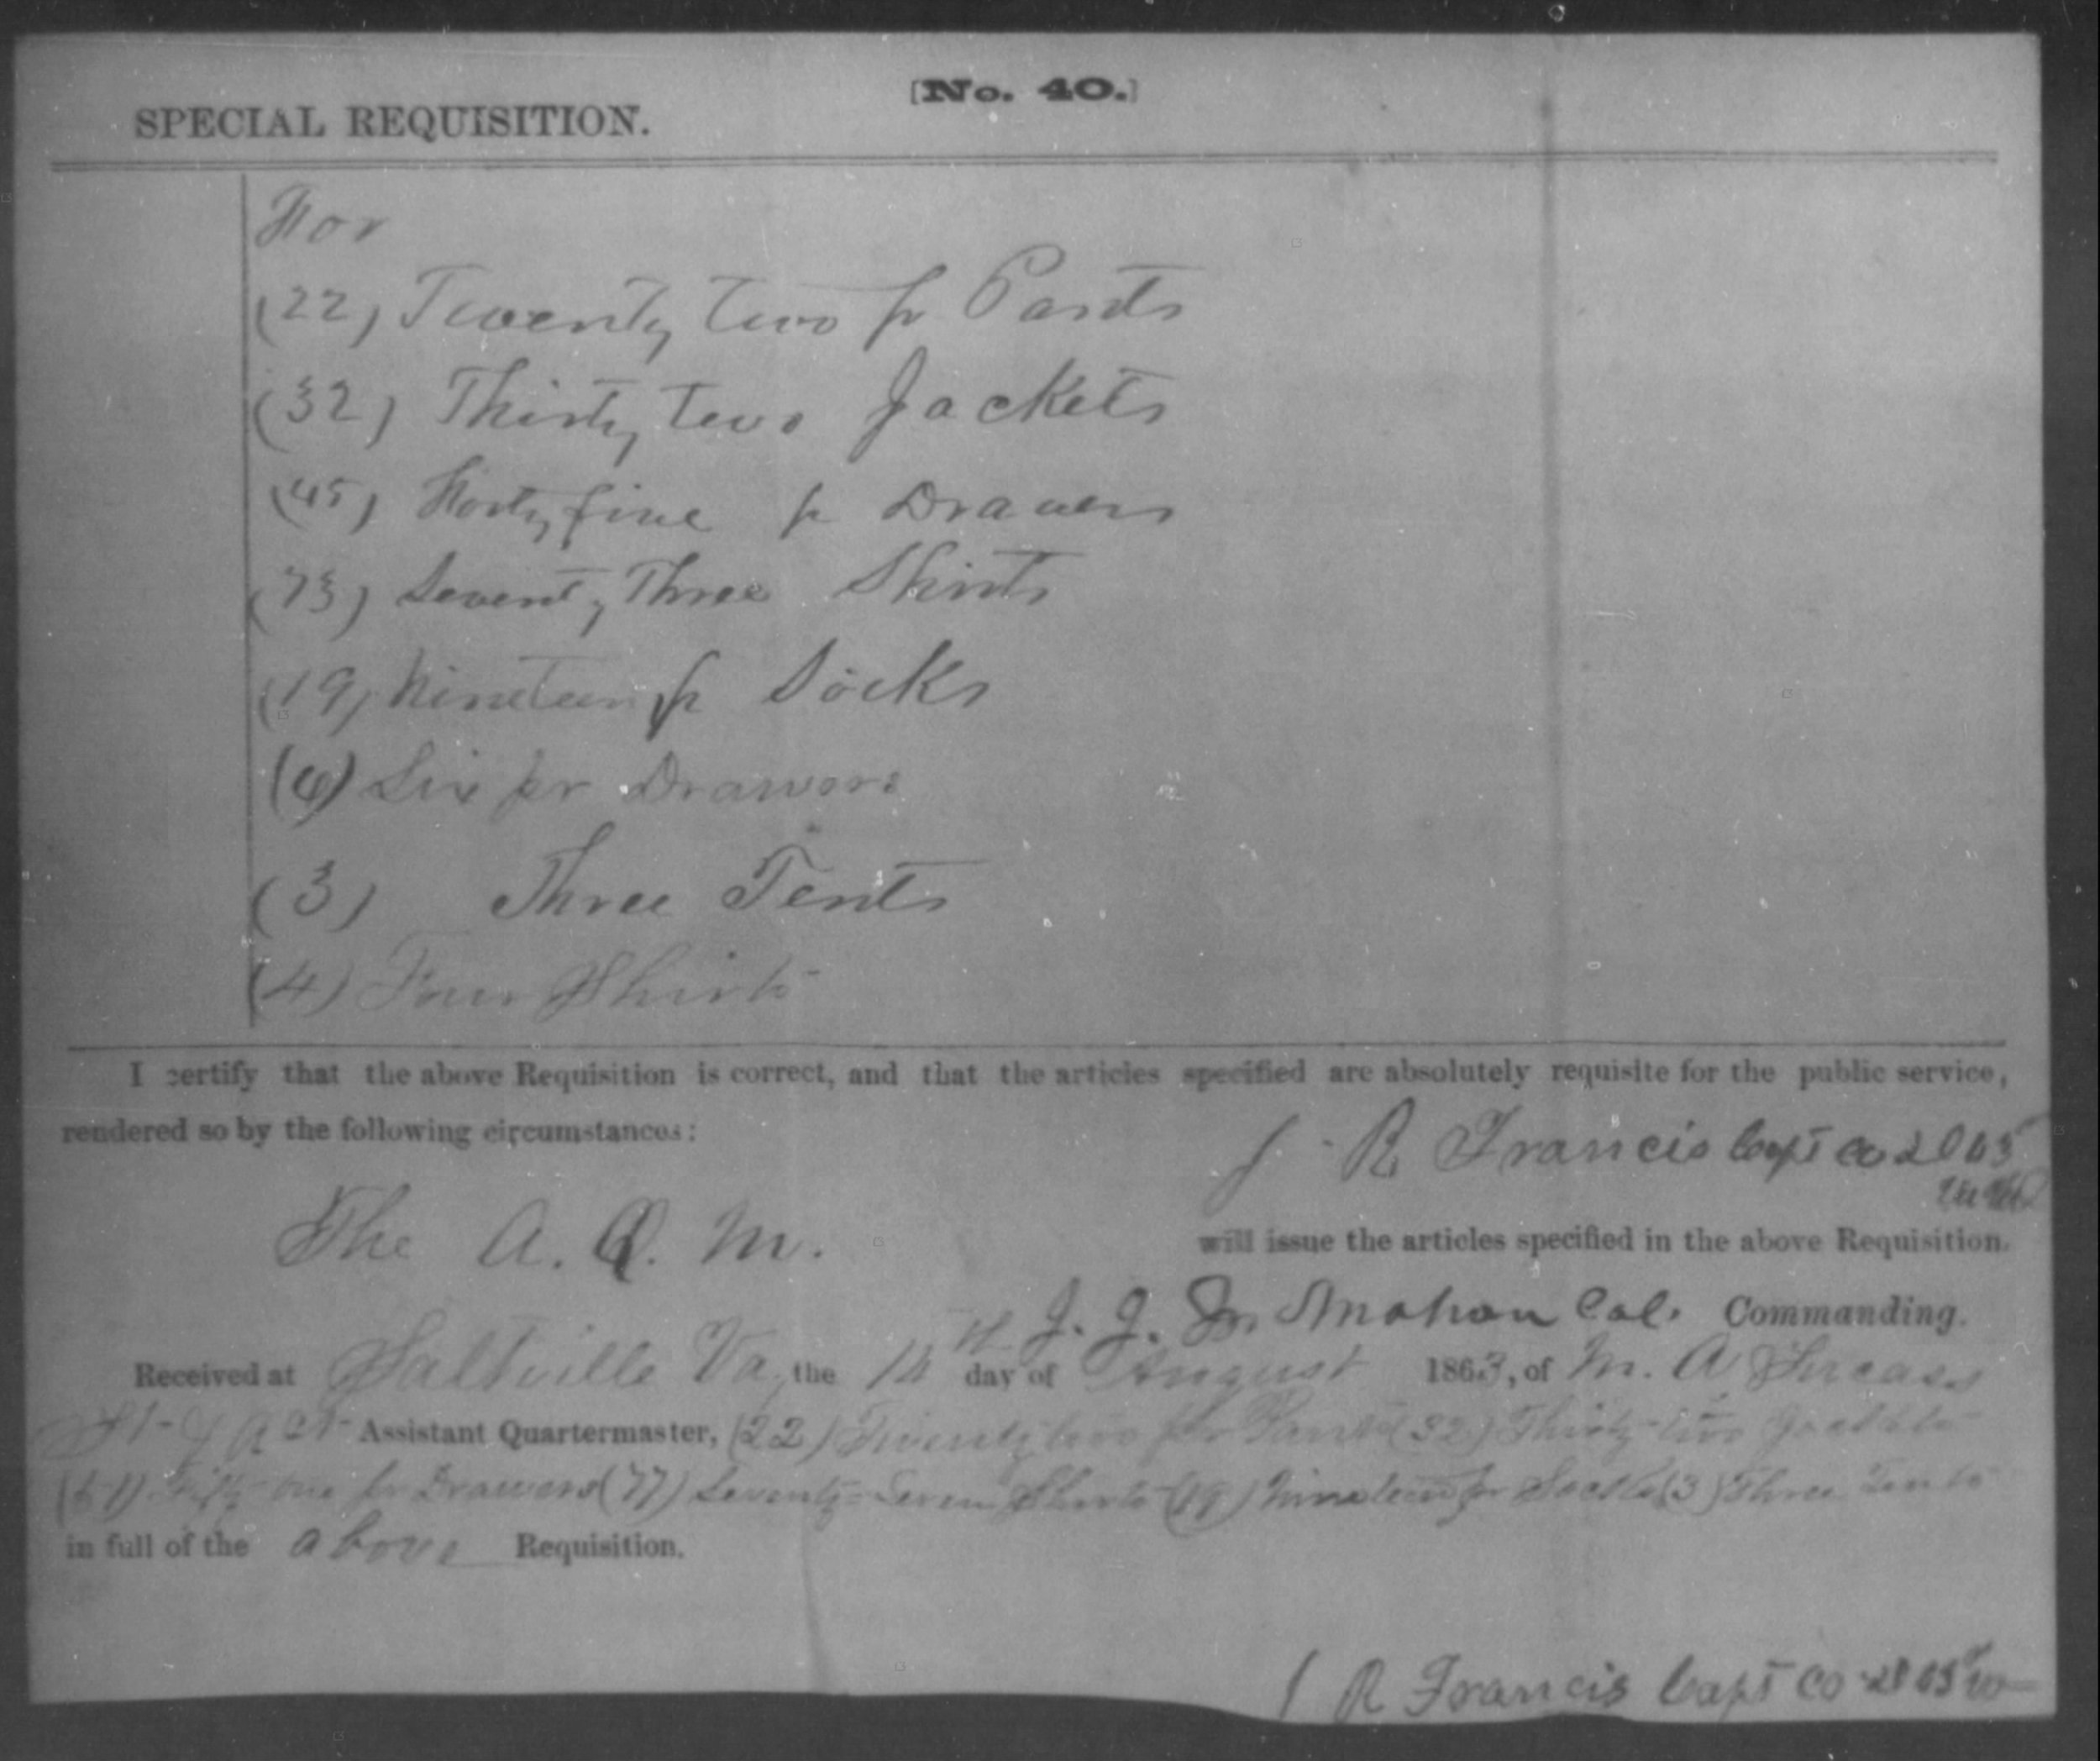 Figure 7 - Issue to Co. D 63rd VA, 16 Aug 1863